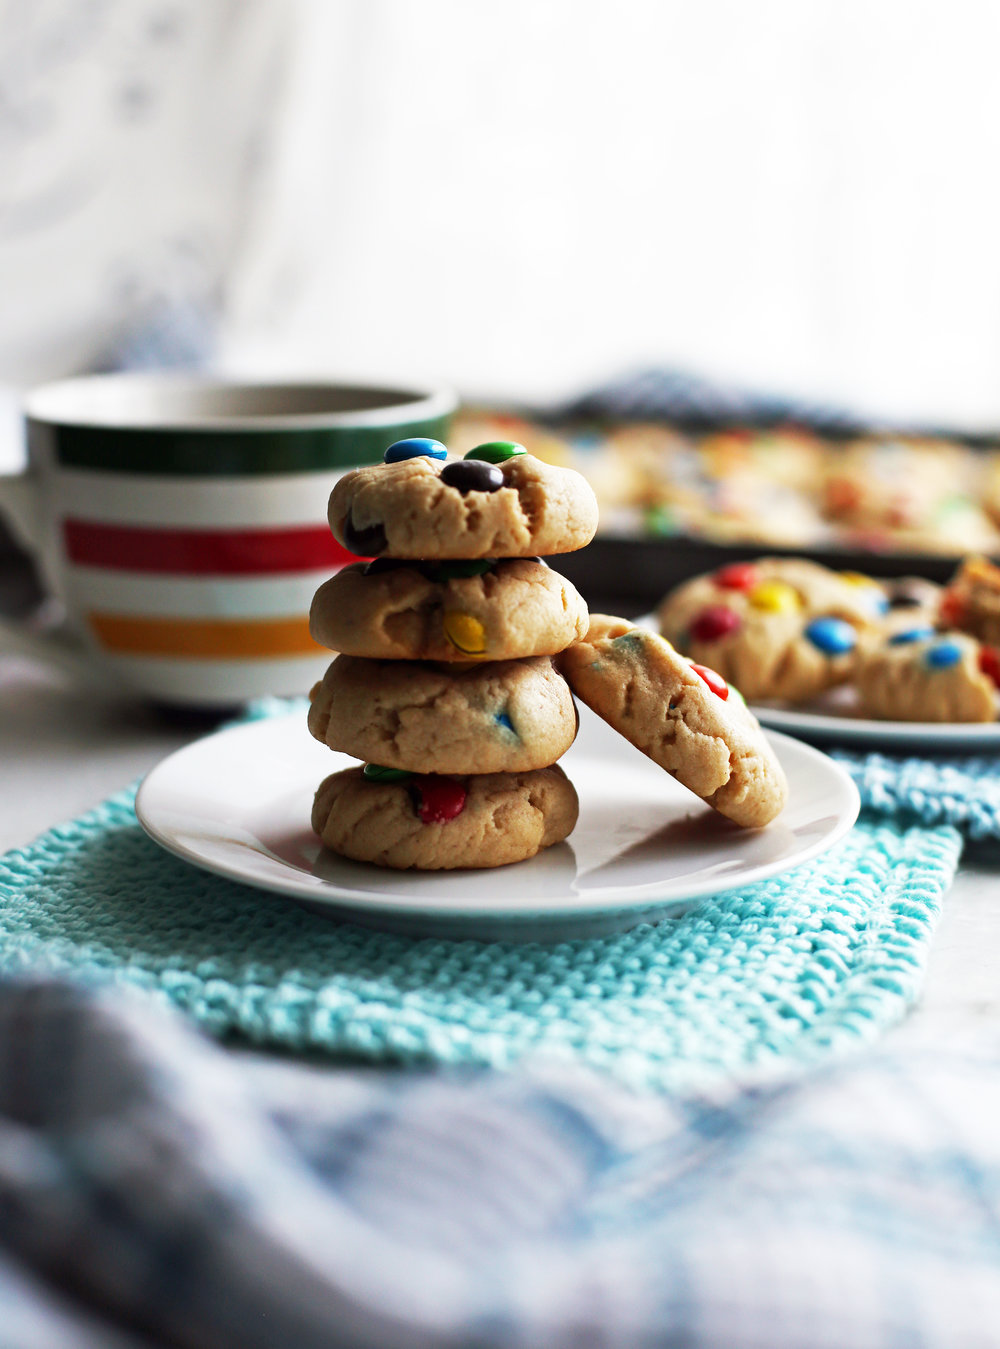 Four stacked peanut butter M&M's cookies on a white plate with more cookies in the background.